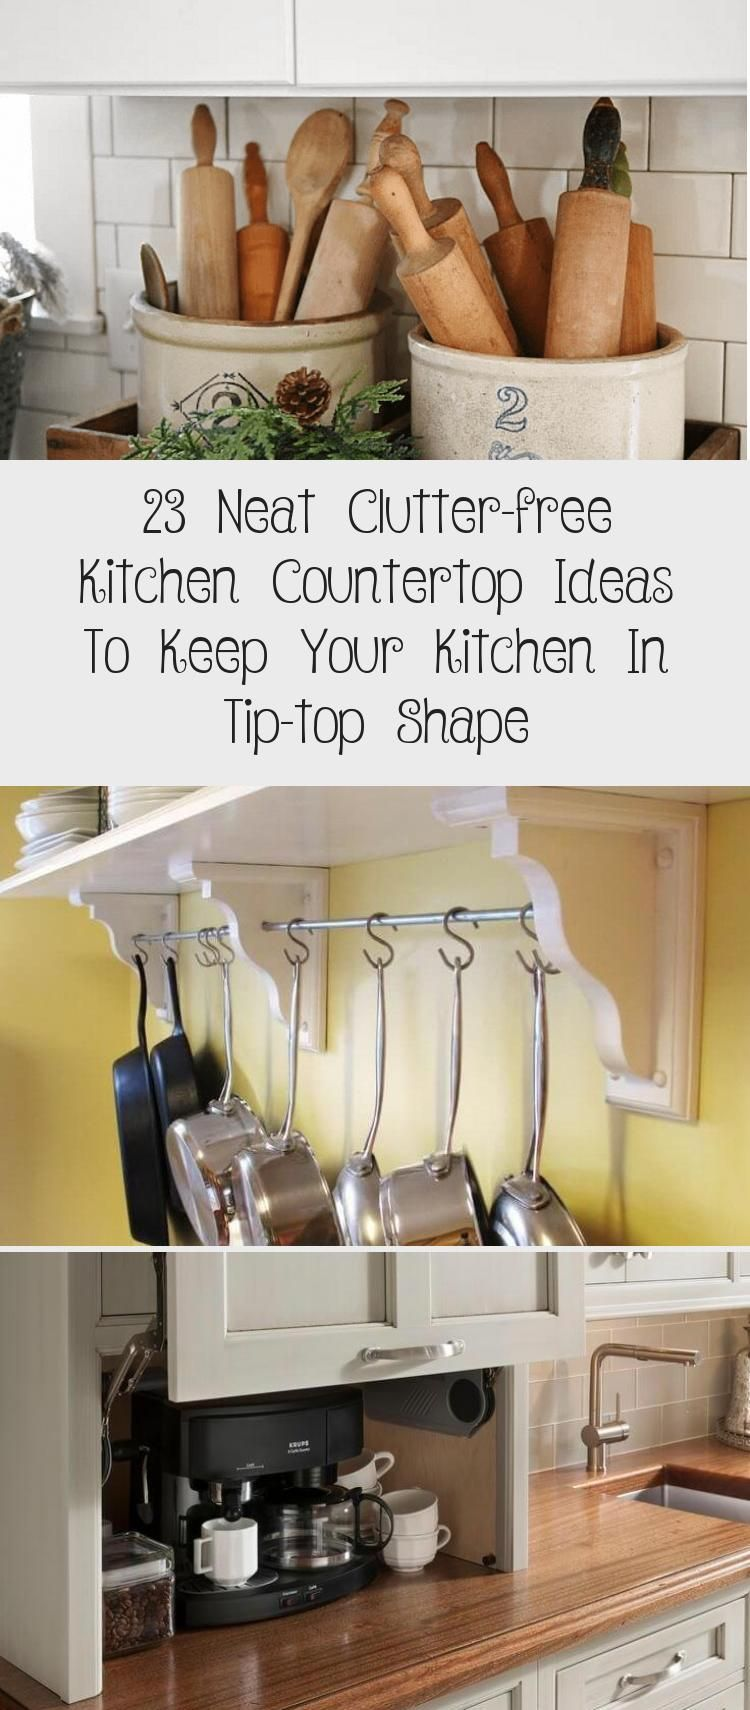 23 Neat Clutter Free Kitchen Countertop Ideas To Keep Your Kitchen